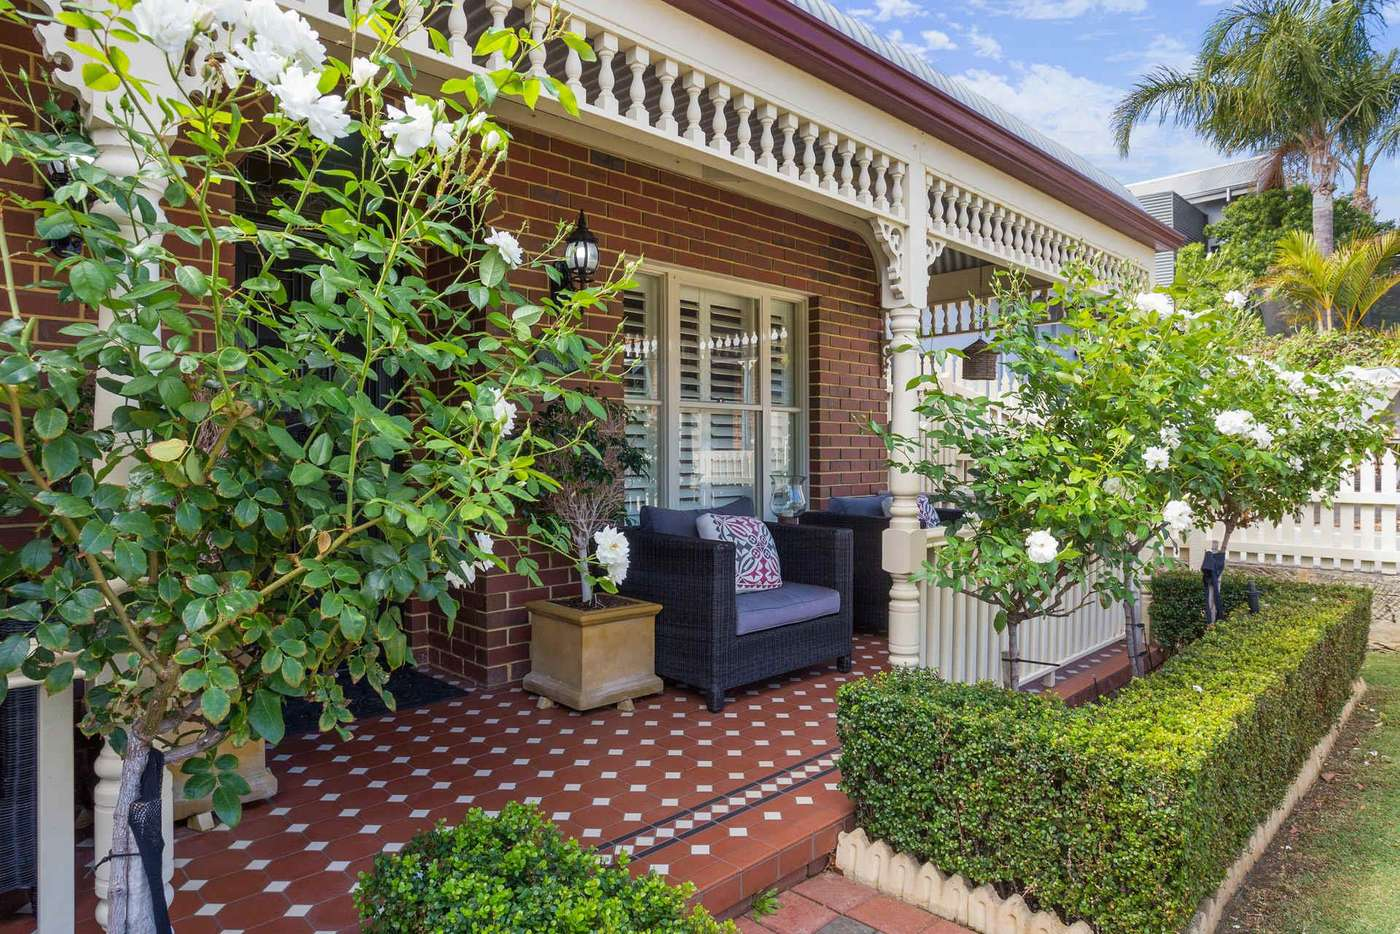 Main view of Homely house listing, 30 Bay Patch Street, East Fremantle WA 6158